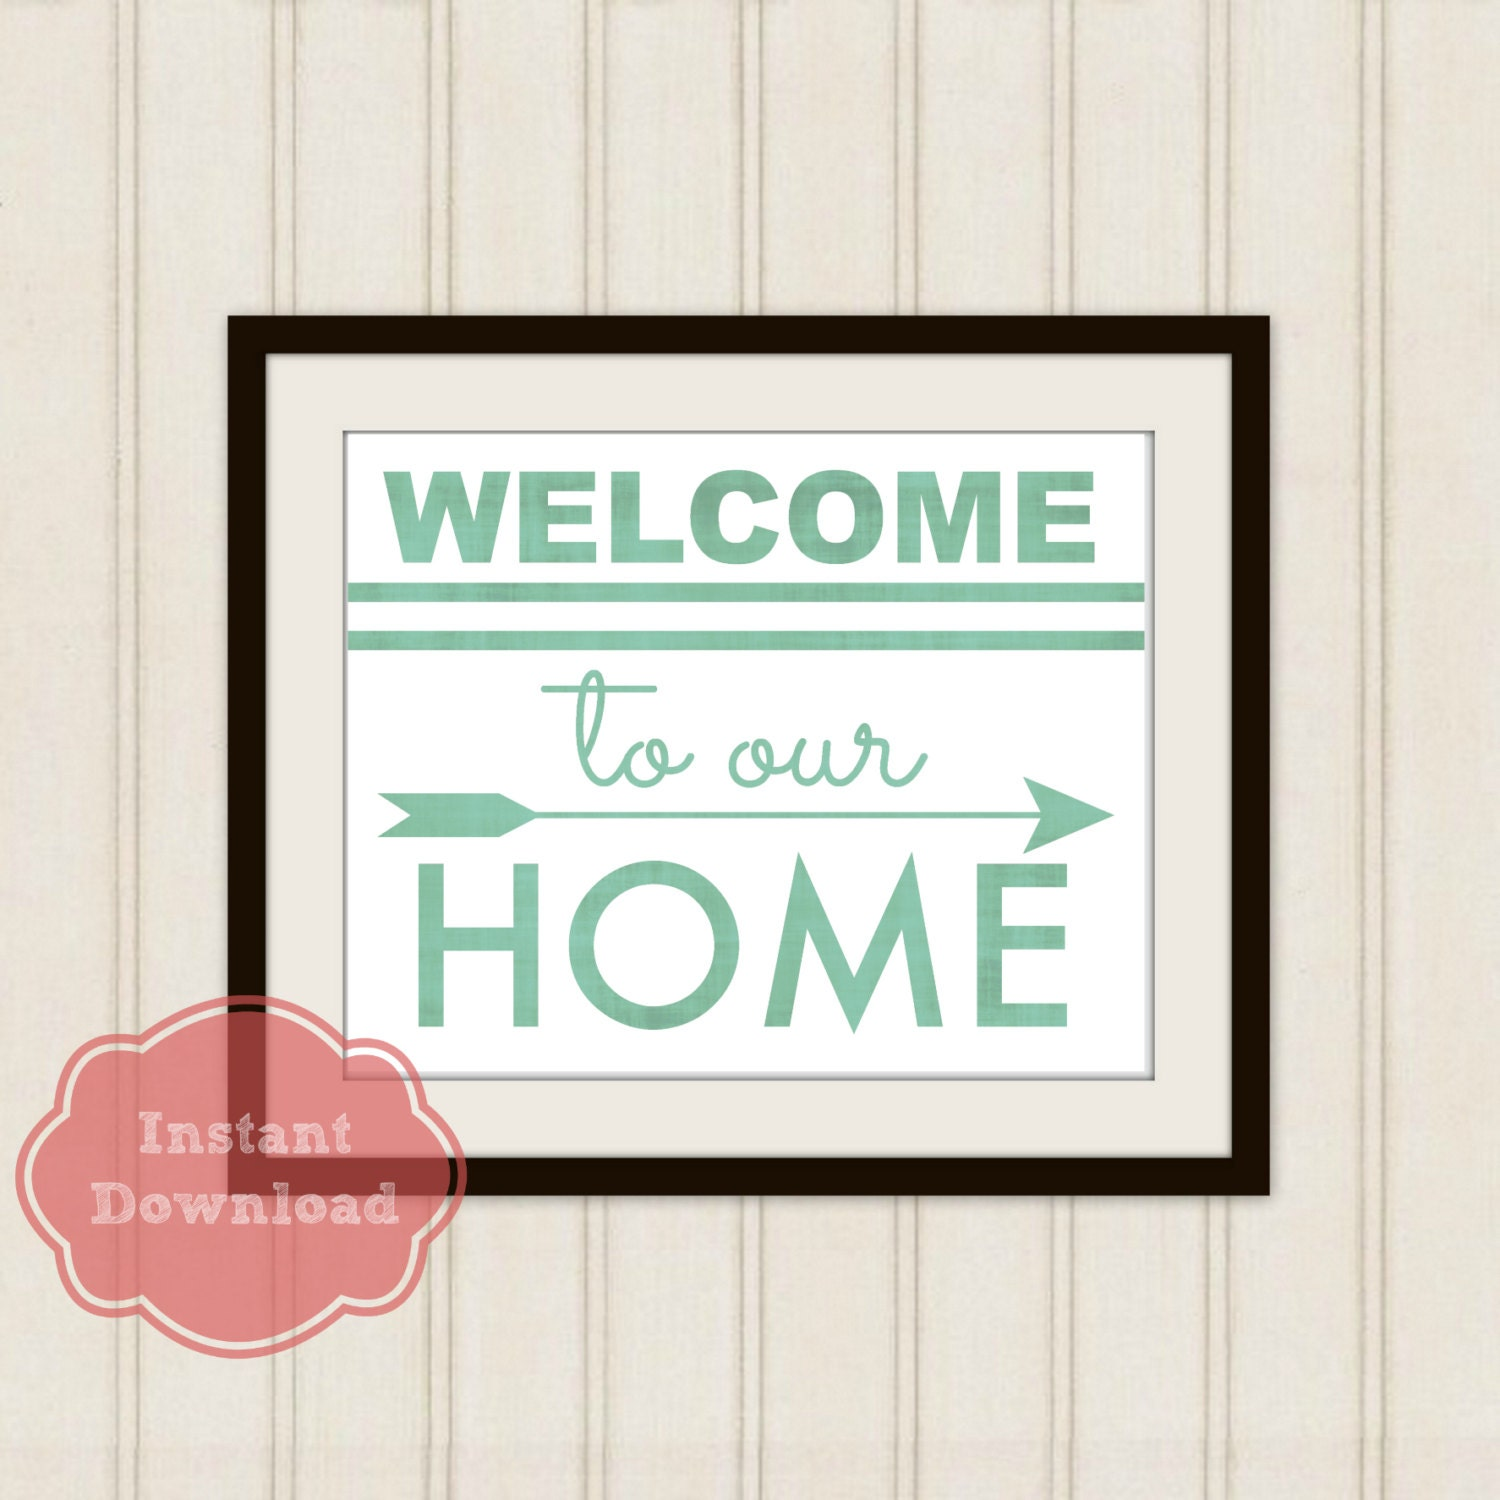 Welcome To Our Home: WELCOME To Our HOME DIGITAL Art Print Welcome Instant